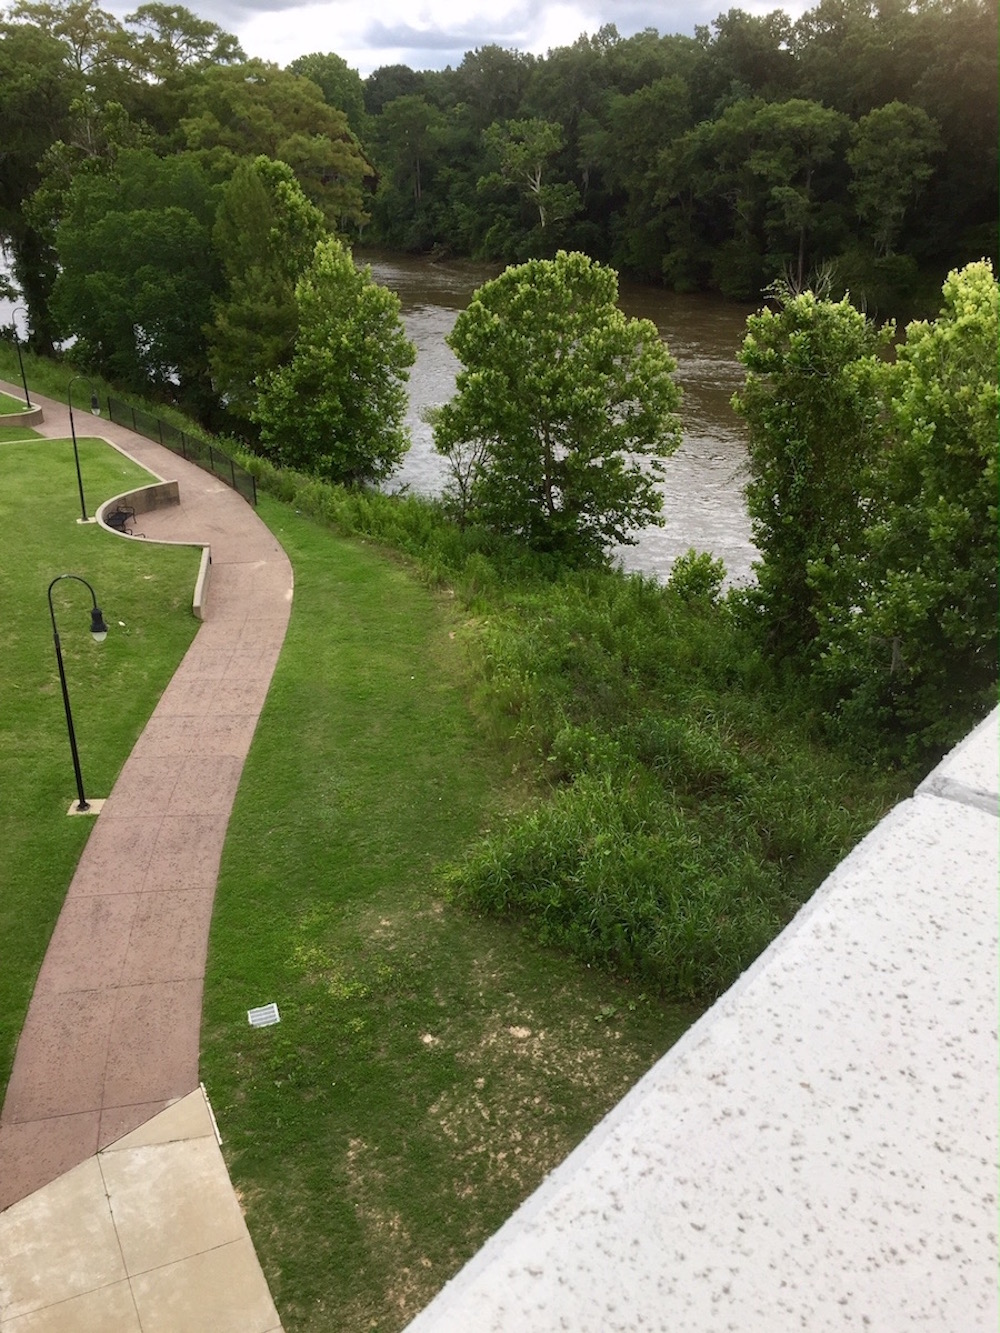 Free things to do in Albany GA revolve around the Flinnt River.